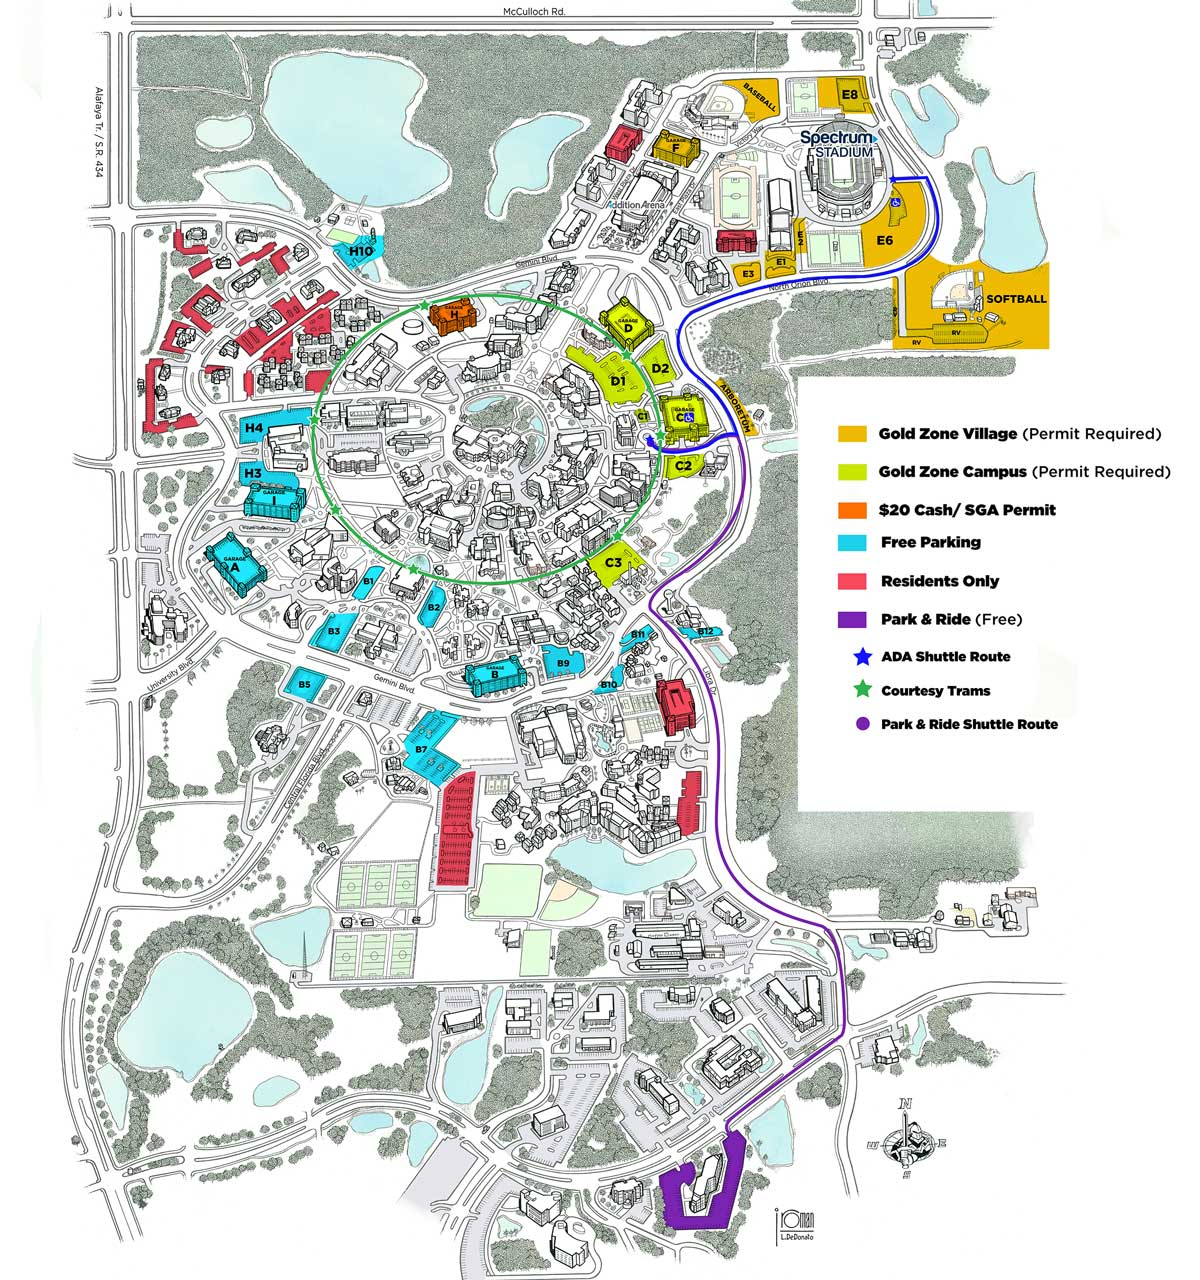 map of UCF campus that shows parking lots and shuttle routes